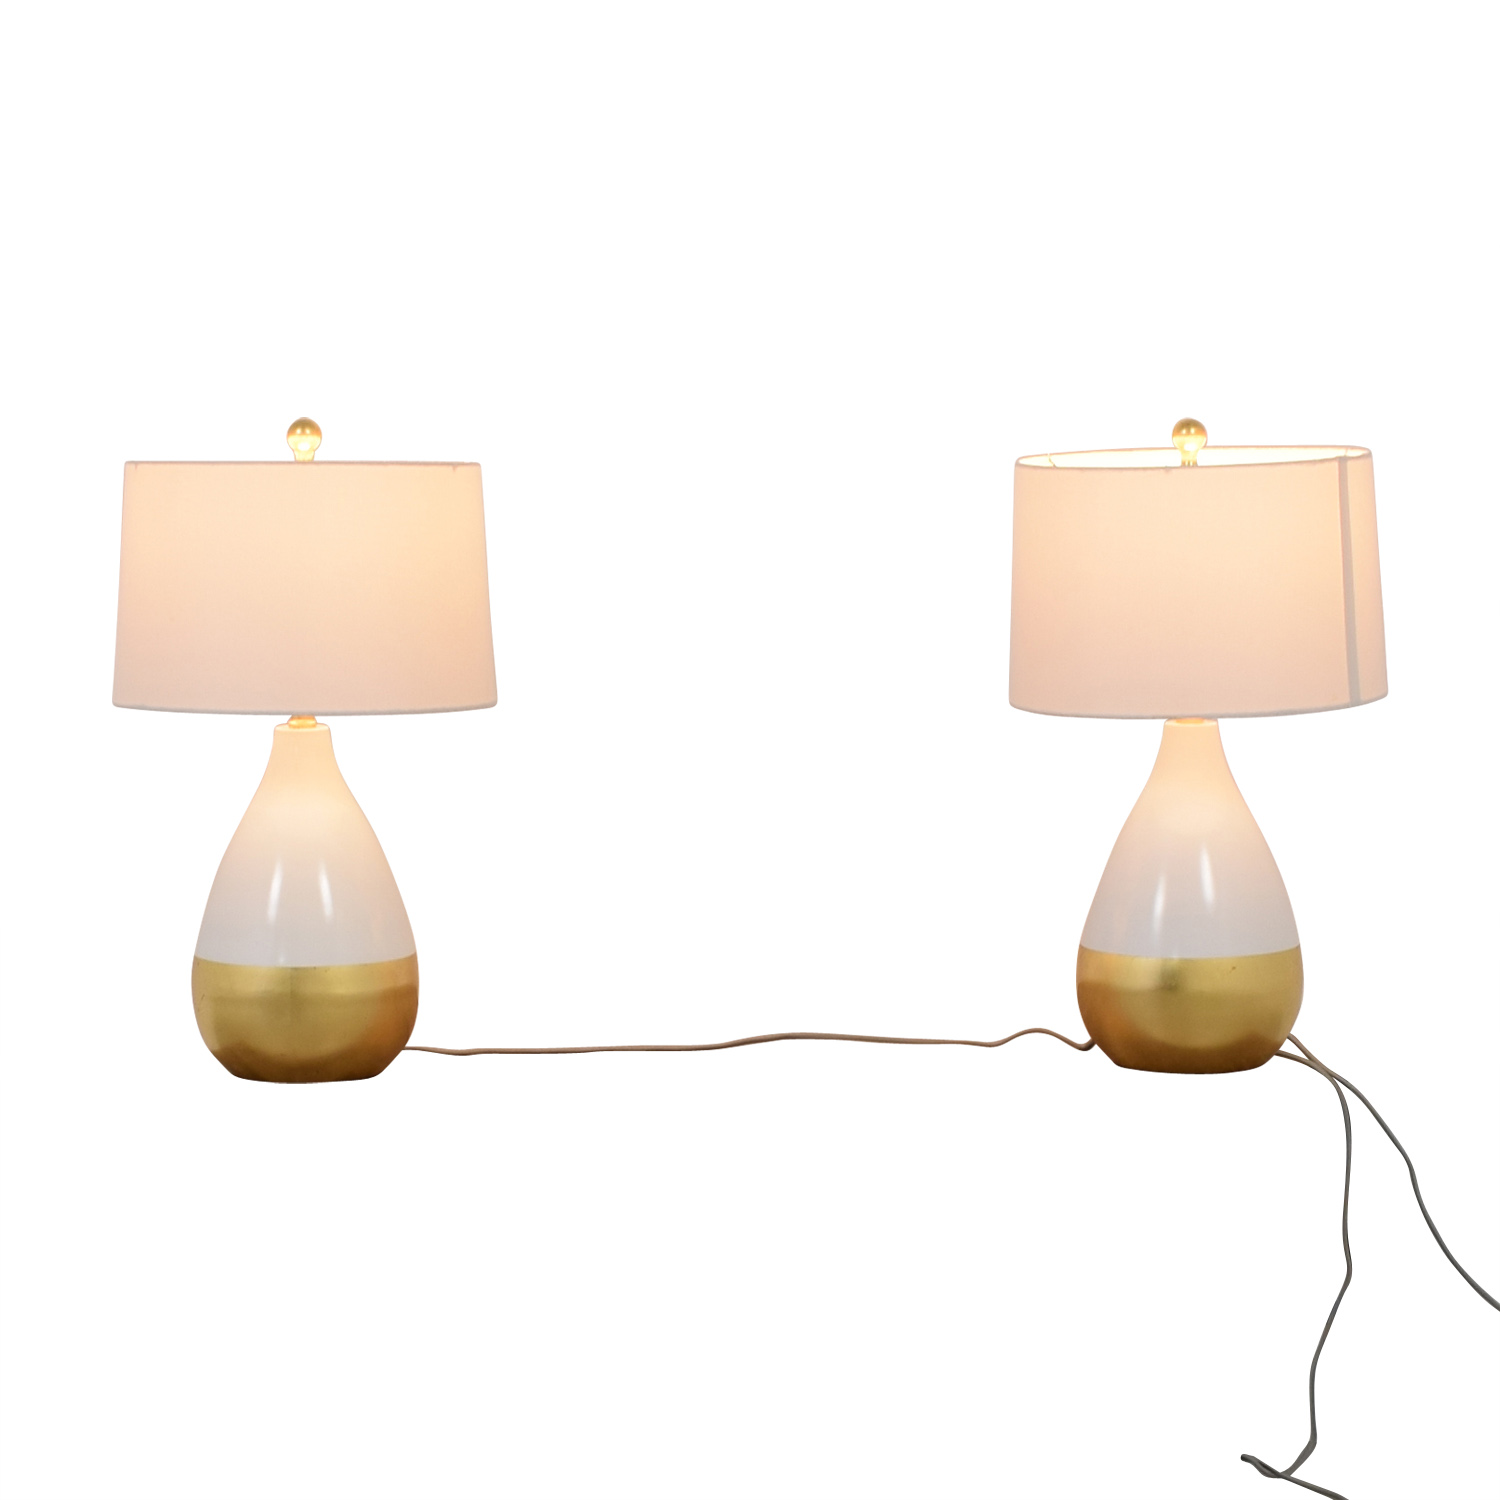 Savafieh Savafieh White and Gold Lamps discount